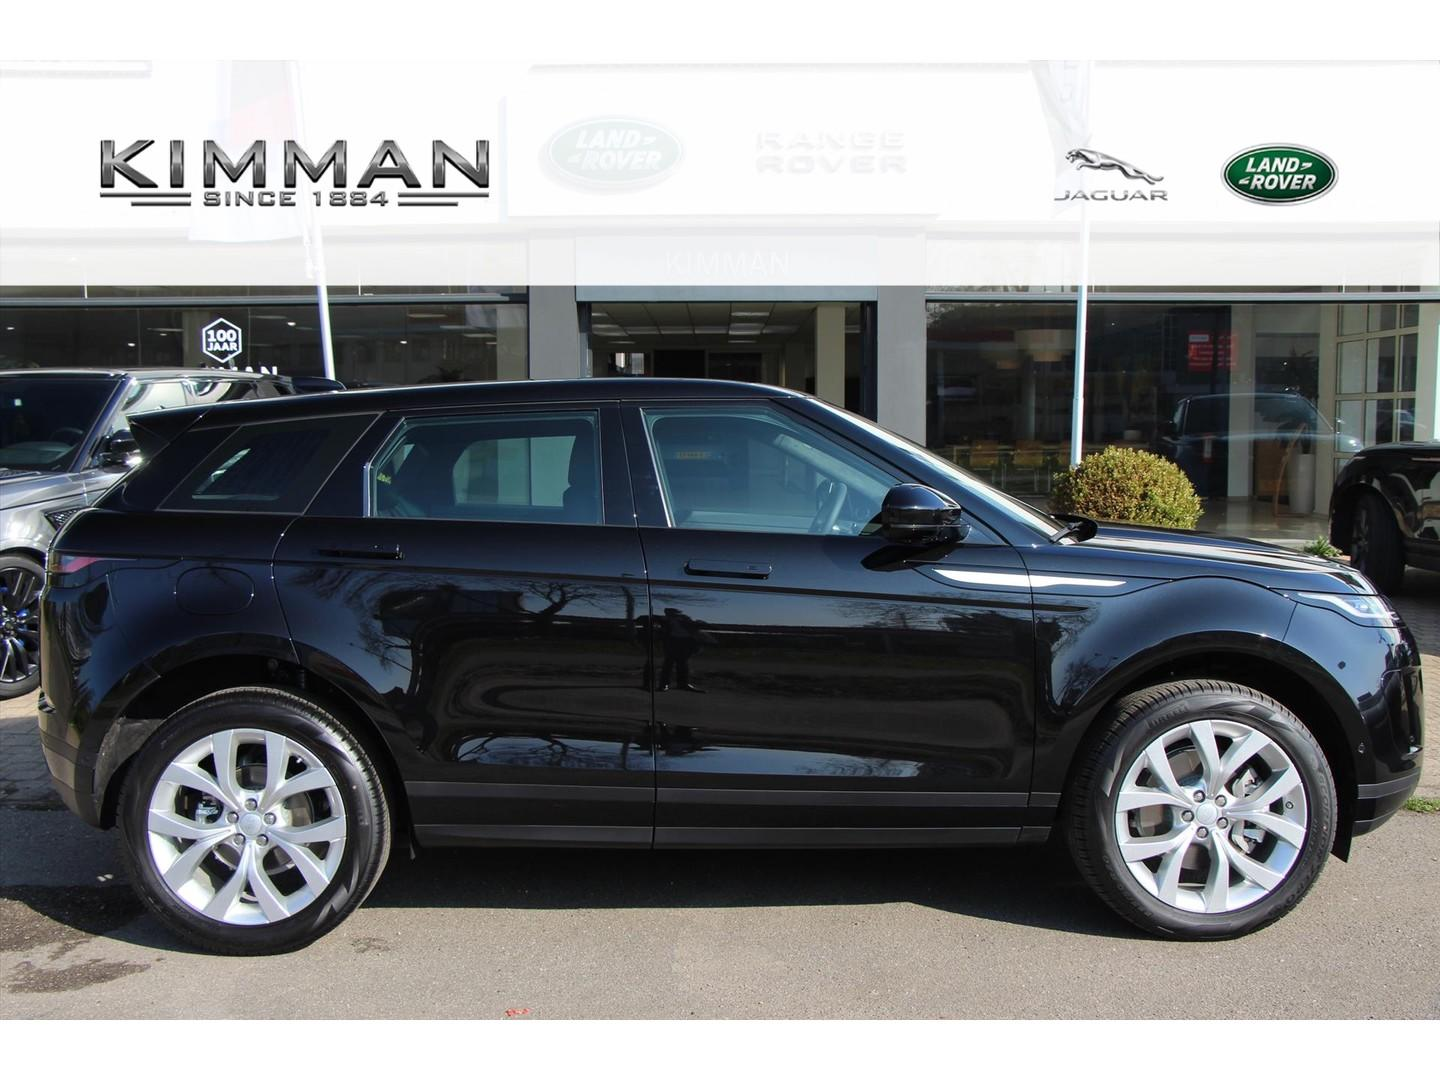 Land rover Range rover evoque New 2.0 td4 180pk 4wd automaat se